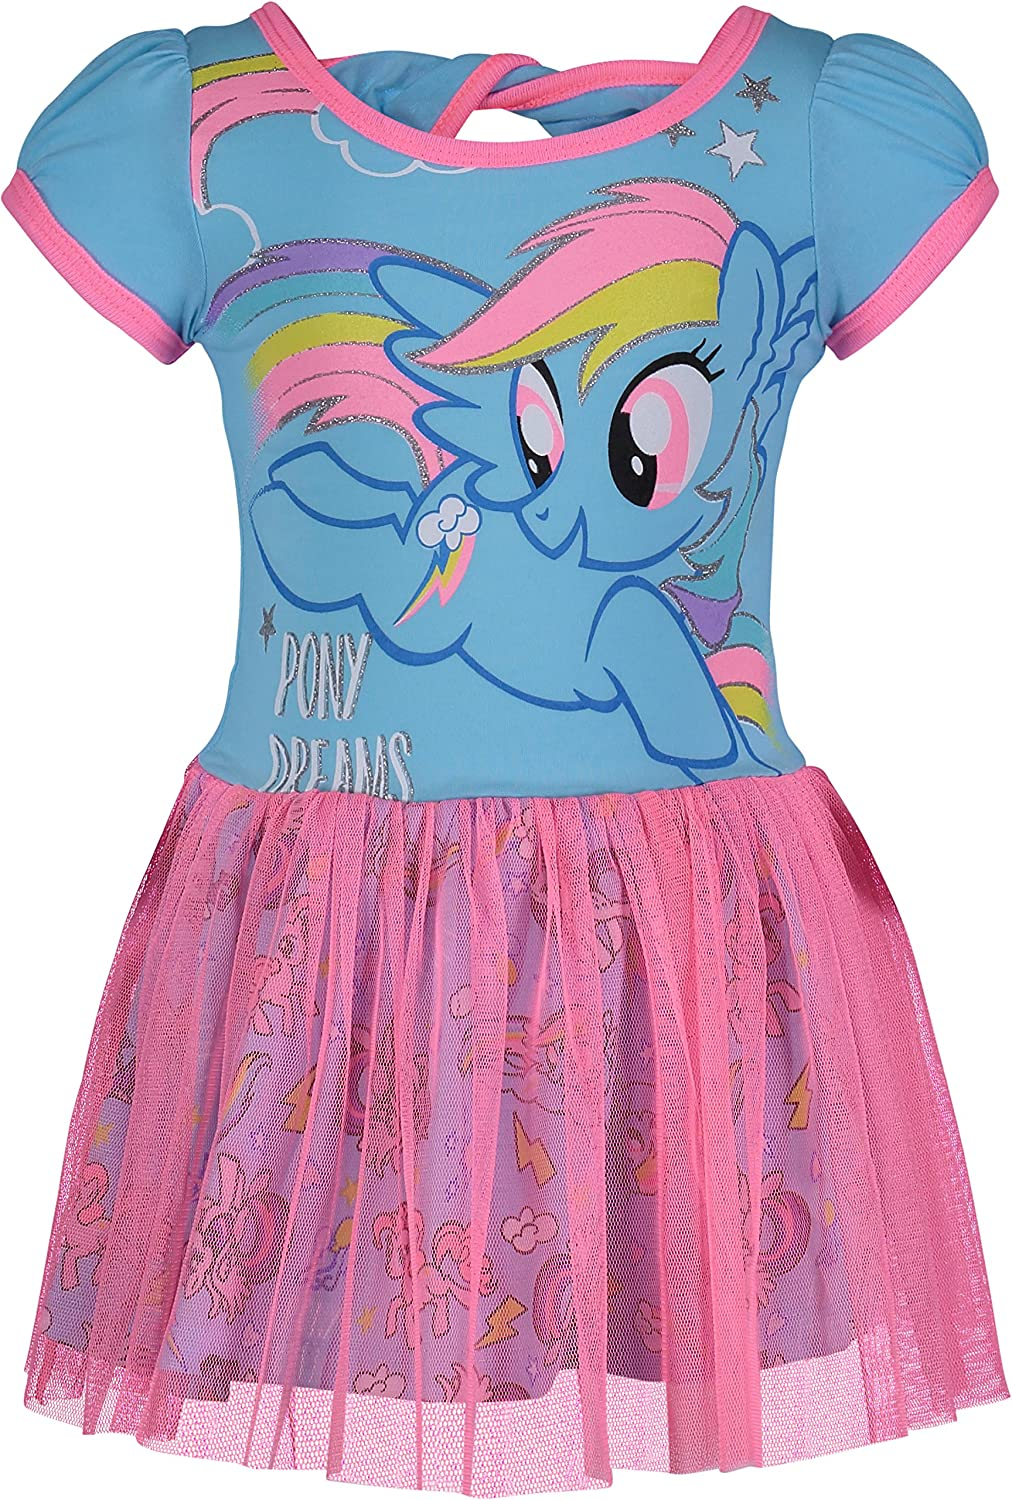 Girl 2 Pack Cotton Dresses with My Little Pony detail 1 Pink /& 1 White Baby